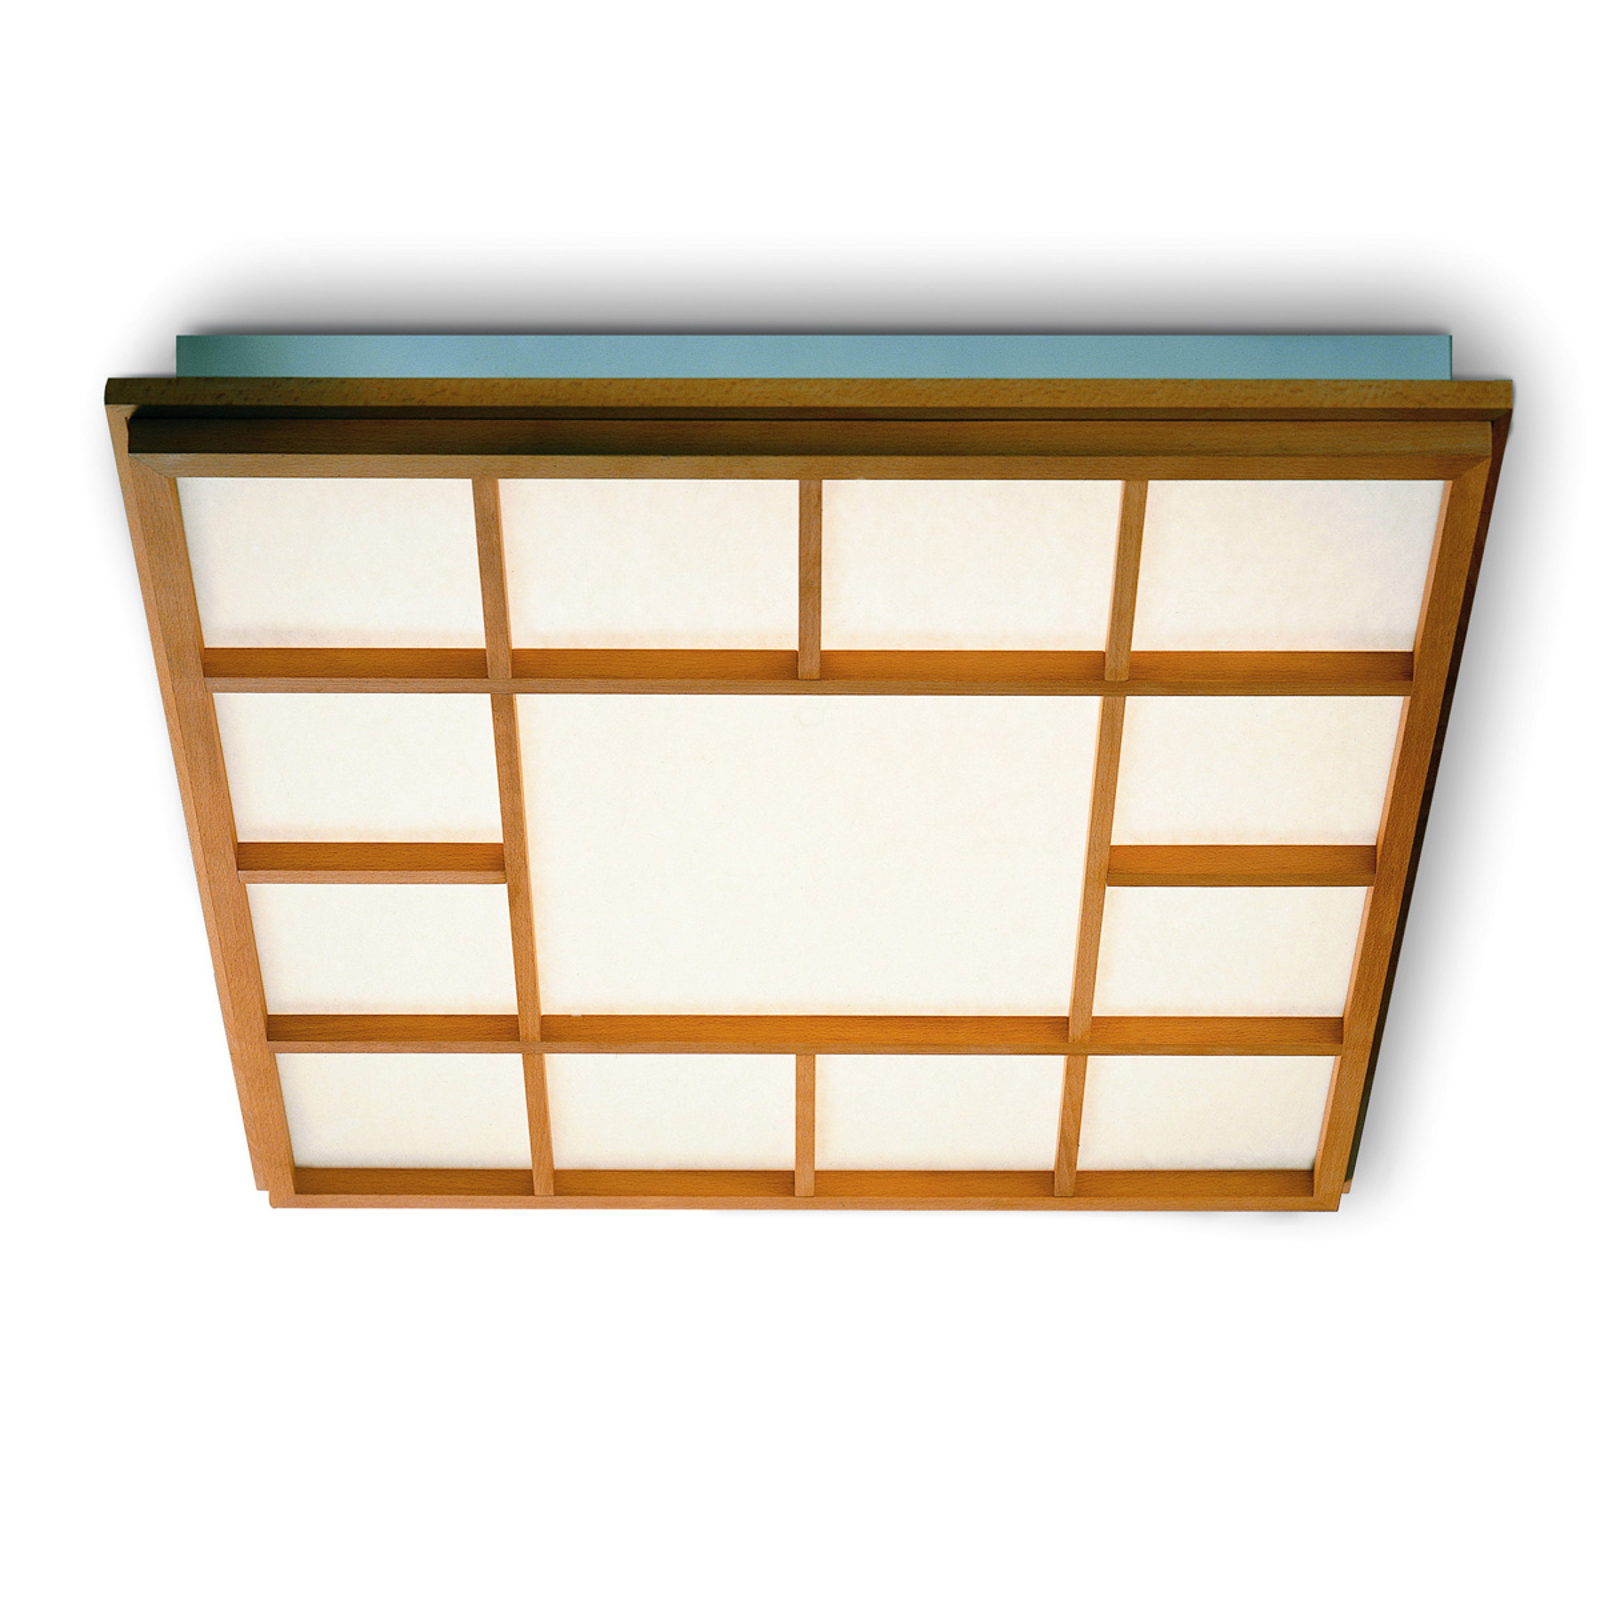 Square LED ceiling light Kyoto 13, beech_2600511_1